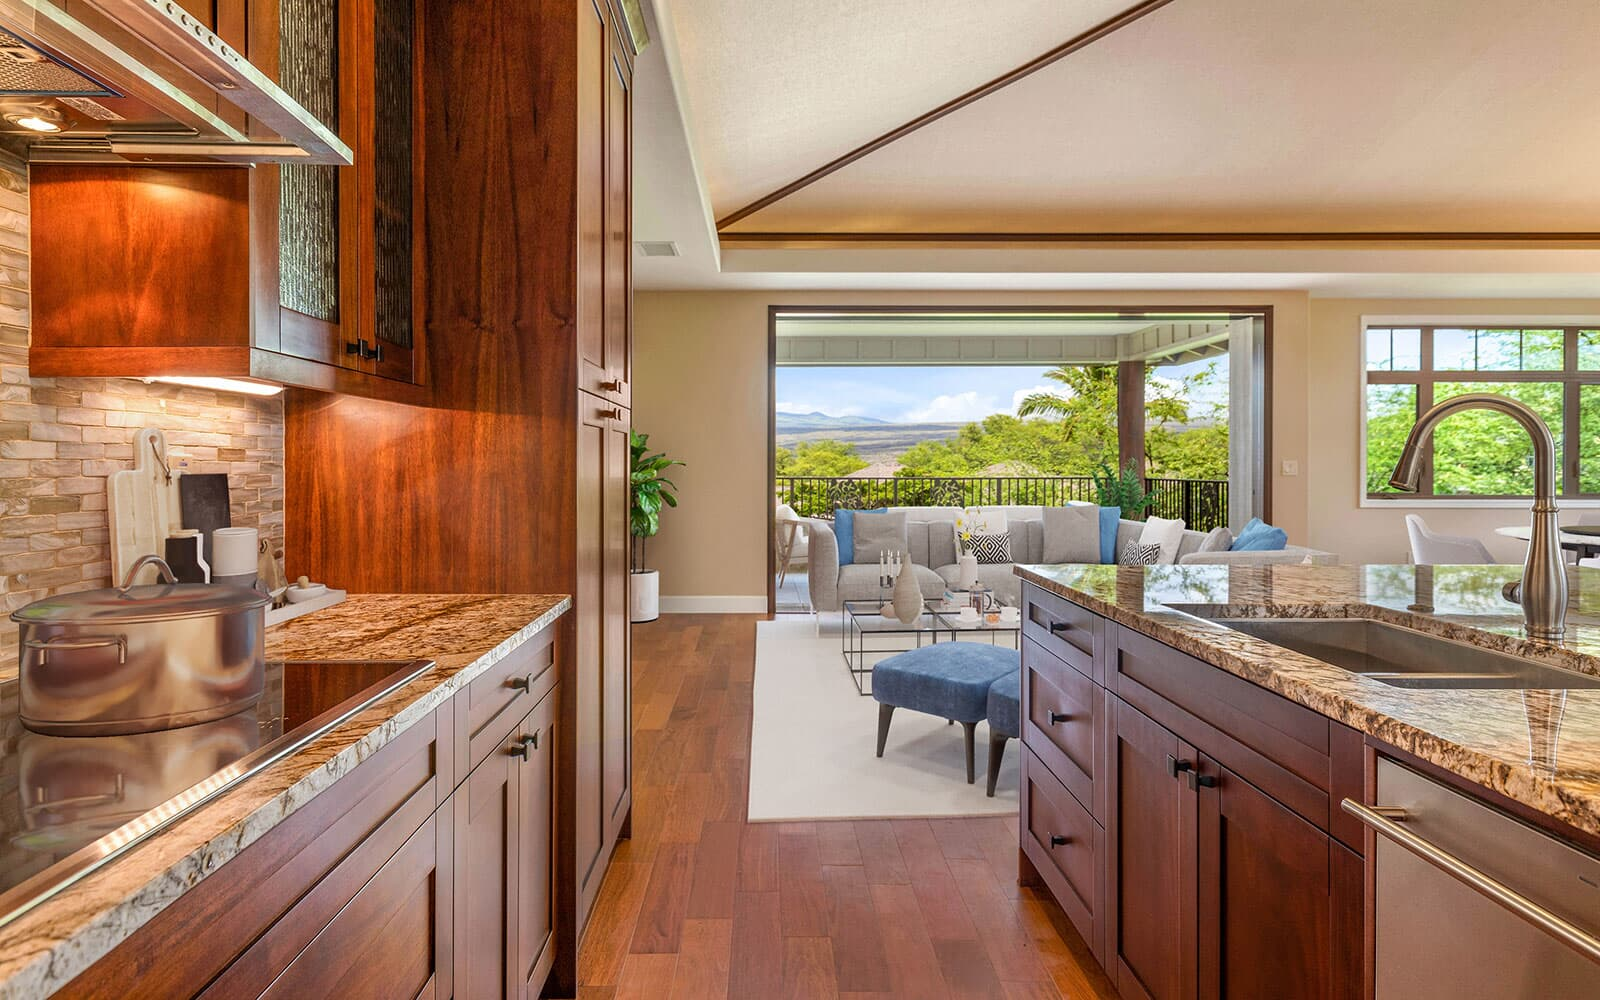 kitchen-living-room-lanai-mahina-plan-4-kamilo-at-mauna-lani-big-island-brookfield-residential